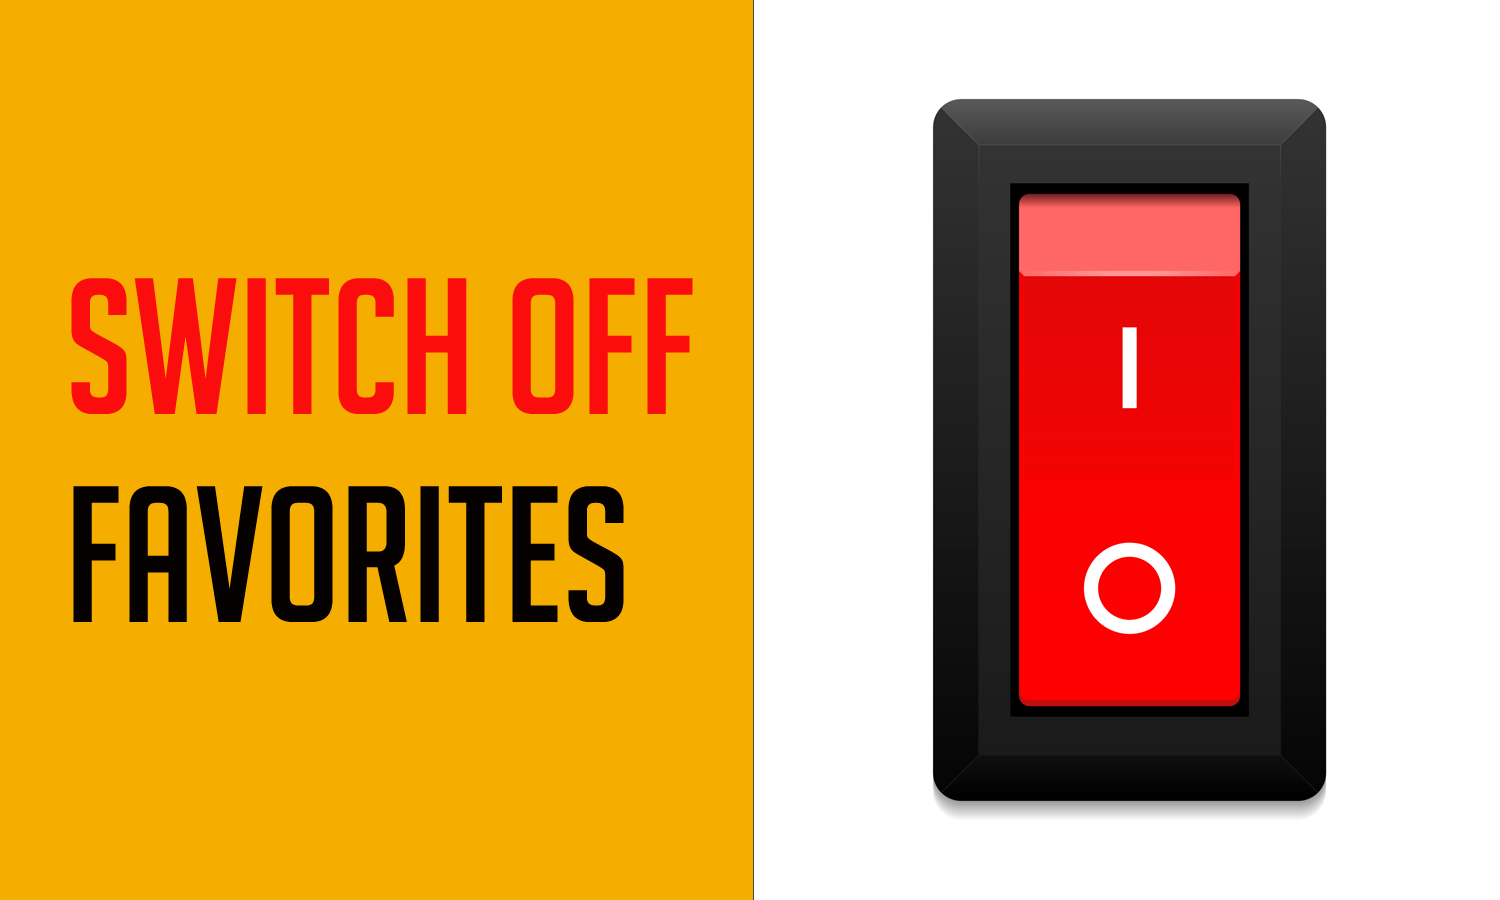 Light Switch Off Clipart Switch Off Favorites Wordpress Plugin For Vantage Theme